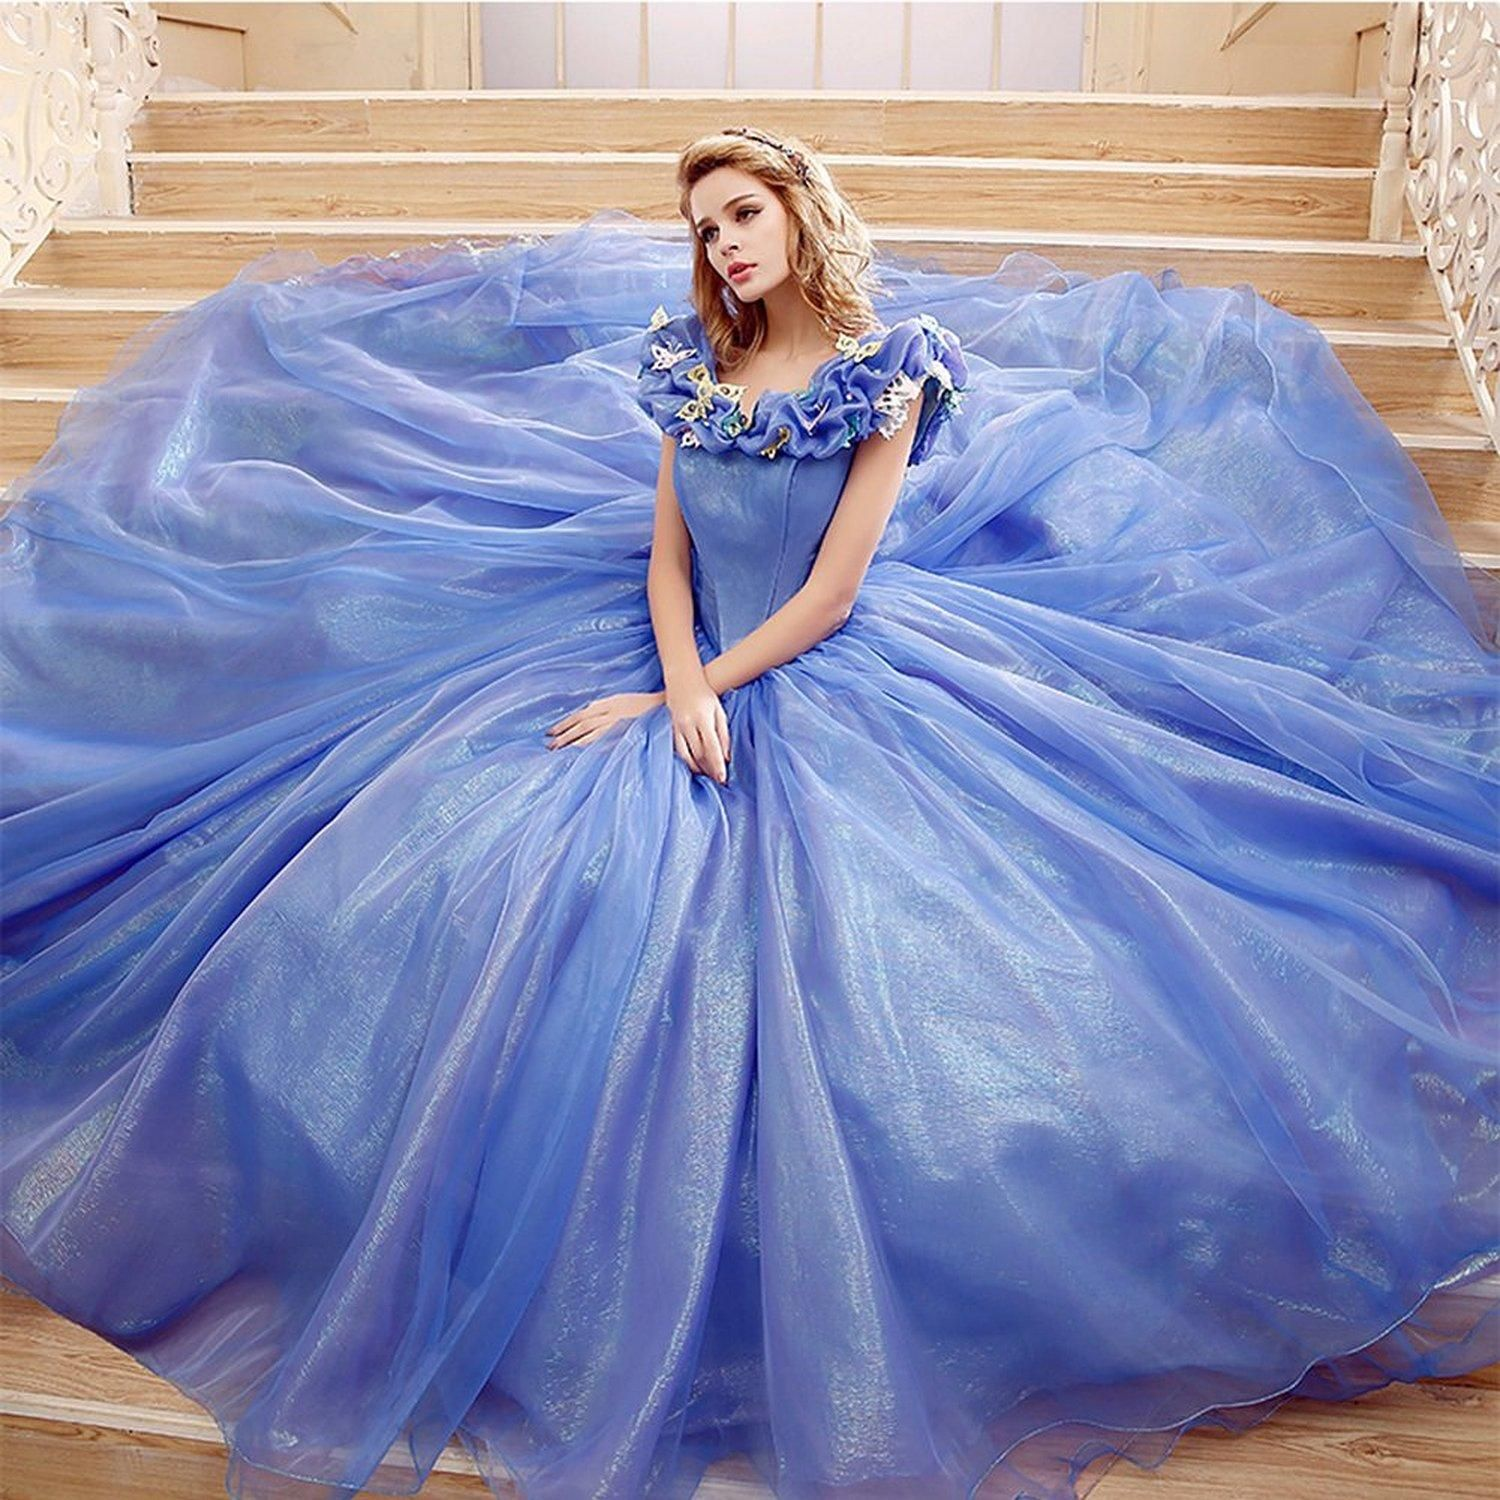 Pin von Fashion and Beauty Love auf Beautiful gowns | Pinterest